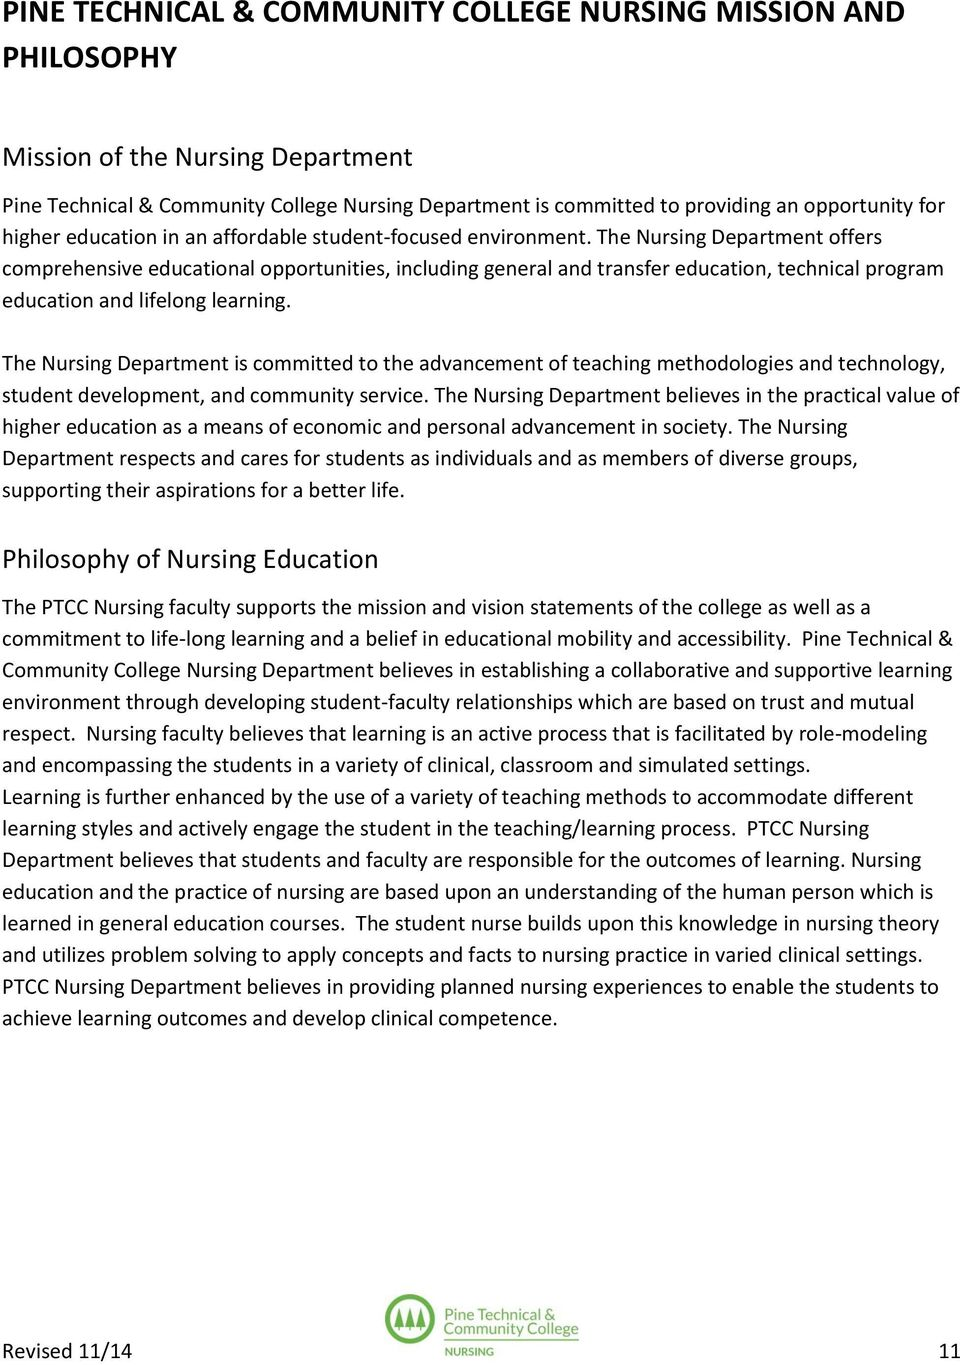 The Nursing Department offers comprehensive educational opportunities, including general and transfer education, technical program education and lifelong learning.